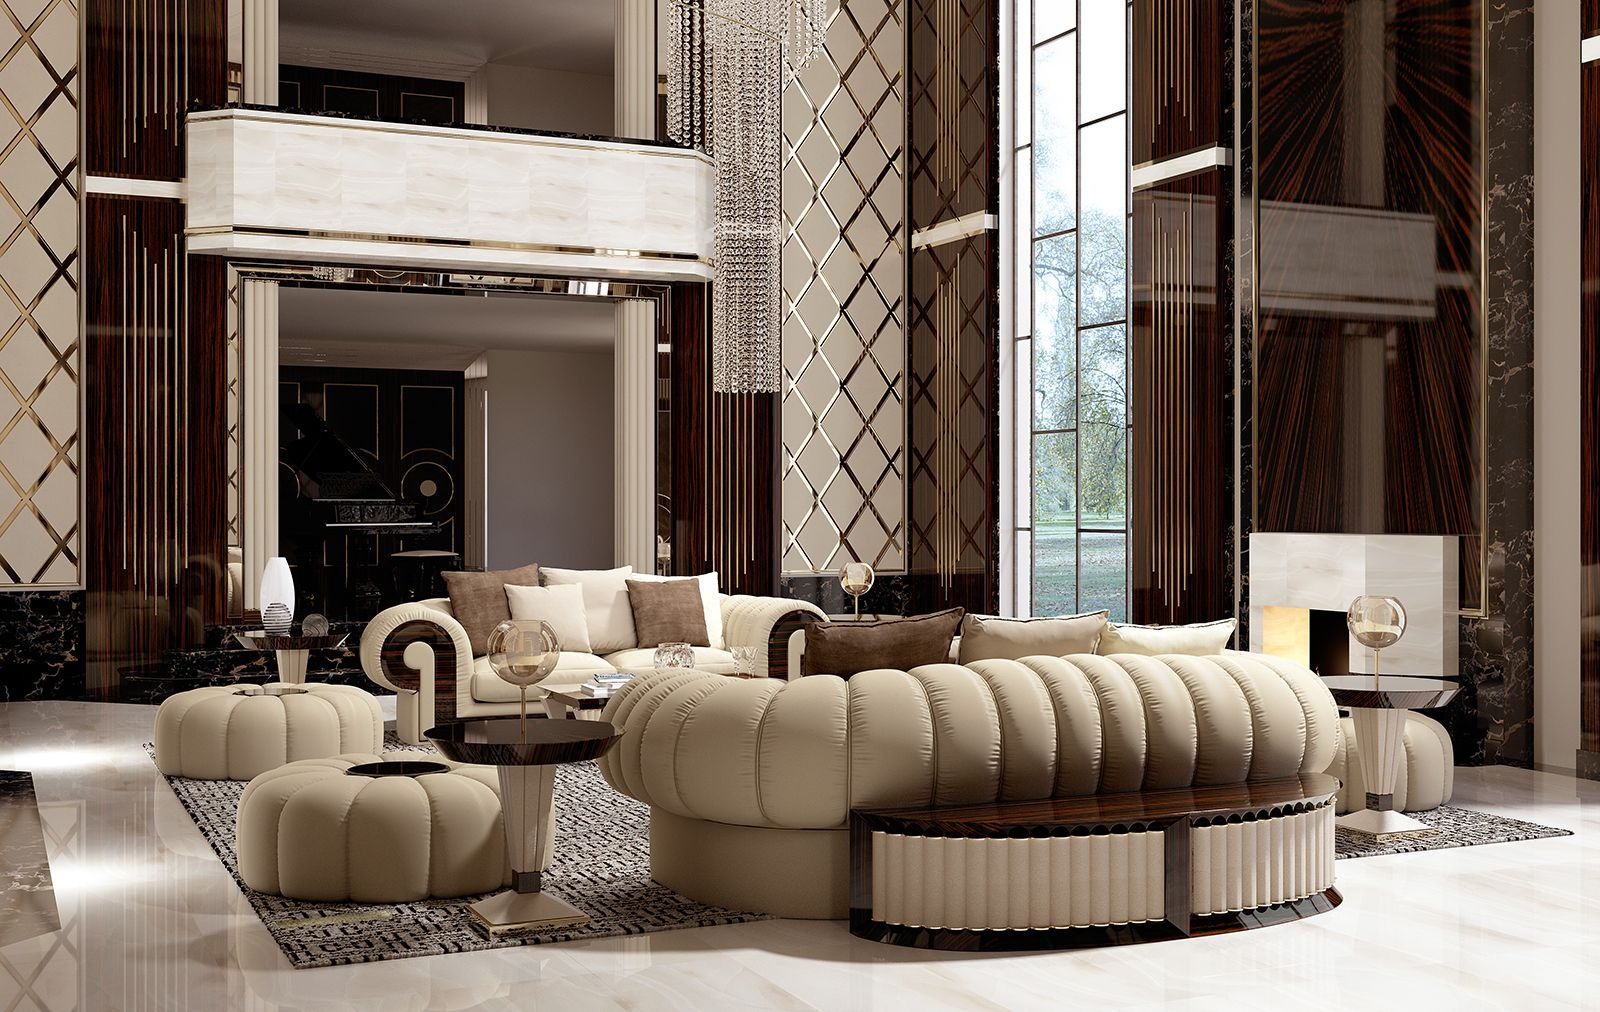 Italian Contemporary Sofas Italian Furniture For Exclusive And Modern Design 新贵